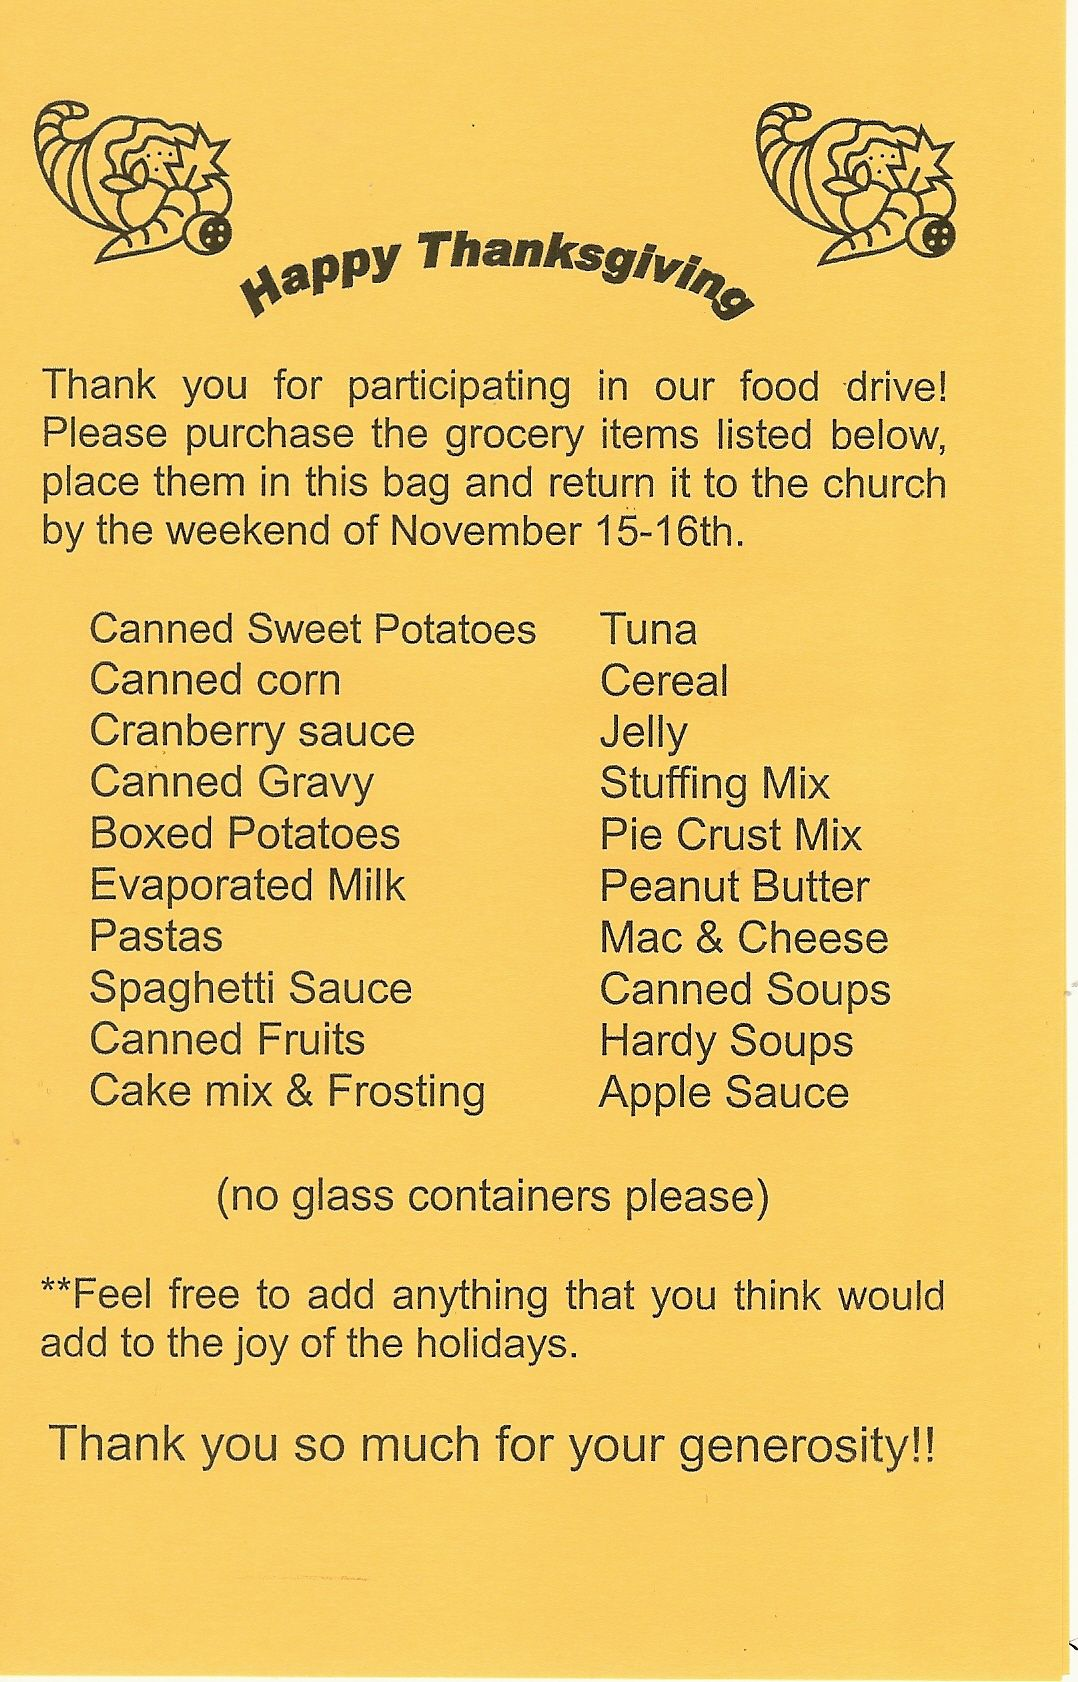 Thanksgiving Food Drive Food drive, Thanksgiving recipes